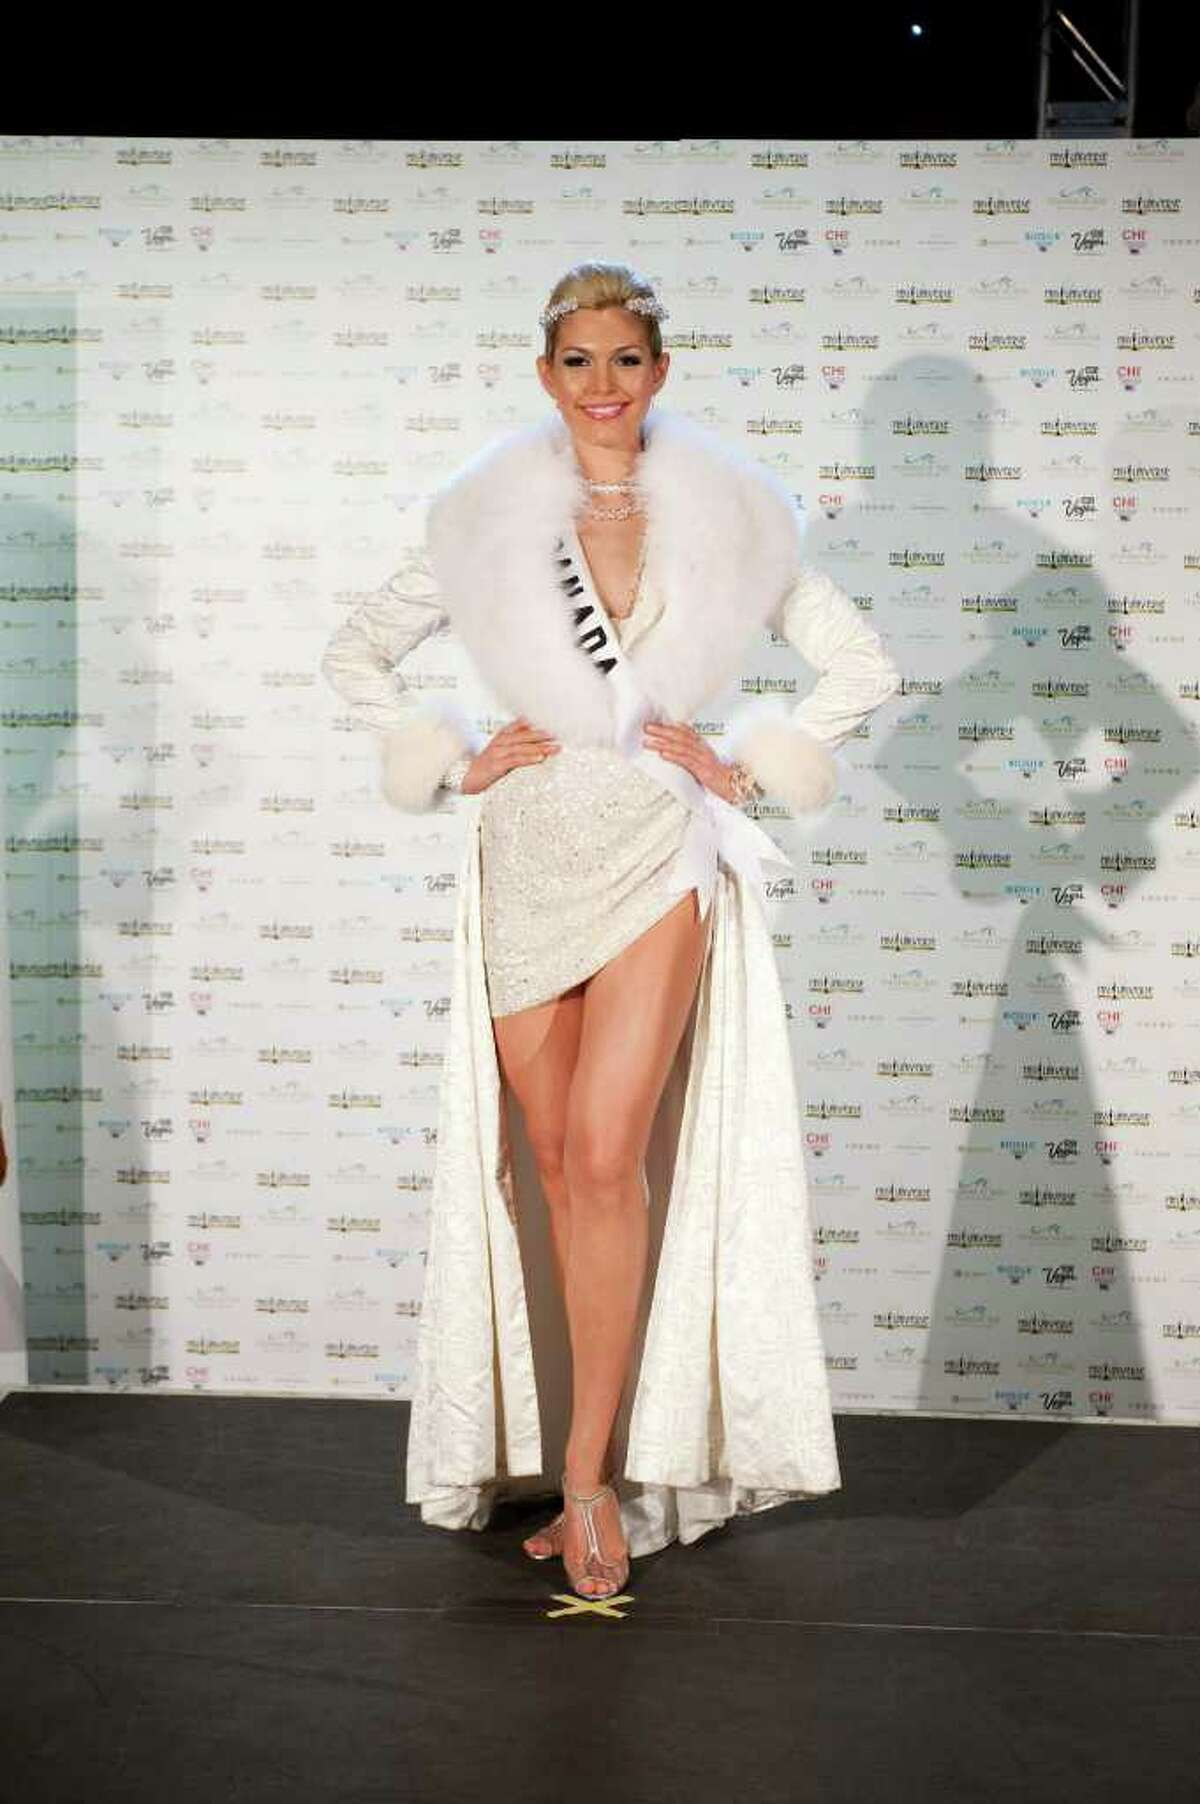 Elena Semikina, Miss Canada 2010 , poses in her national costume at the Mandalay Bay Resort and Casino in Las Vegas Monday, August 16, 2010. (AP Photo/Matt Petit/Miss Universe Organization LP, LLLP)